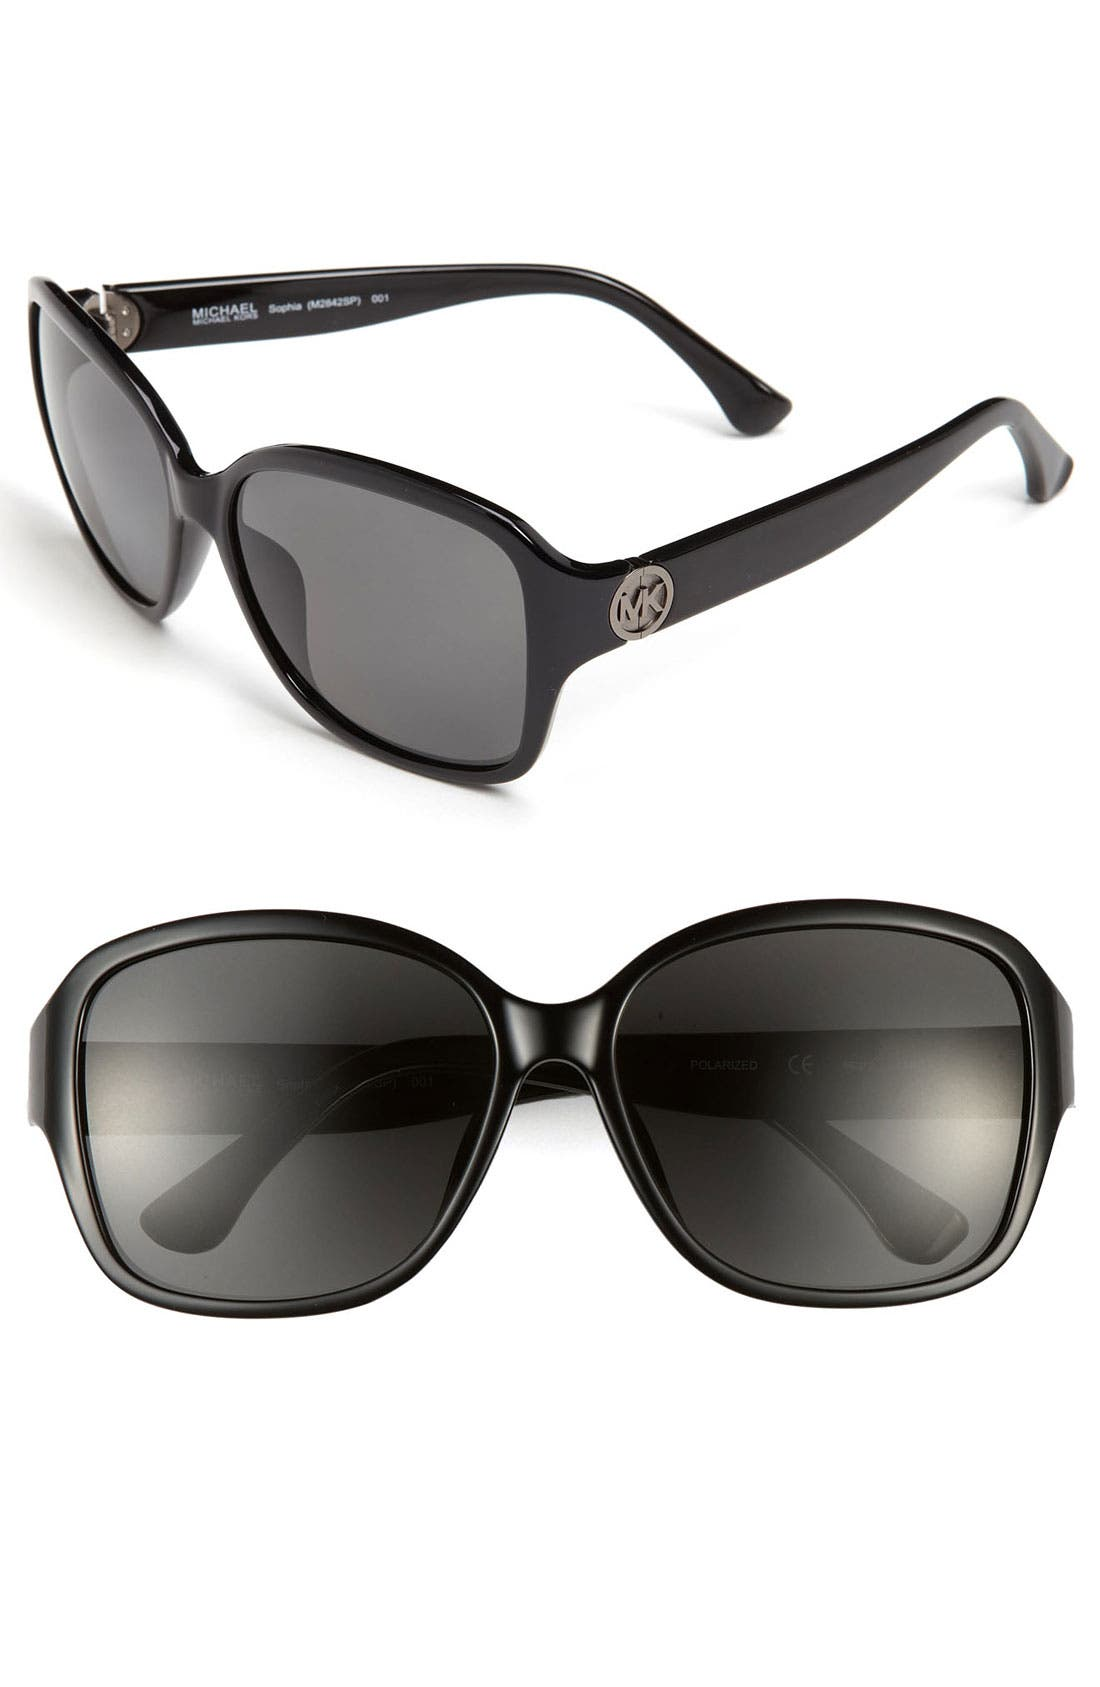 Main Image - MICHAEL Michael Kors 'Sophia' 58mm Polarized Sunglasses